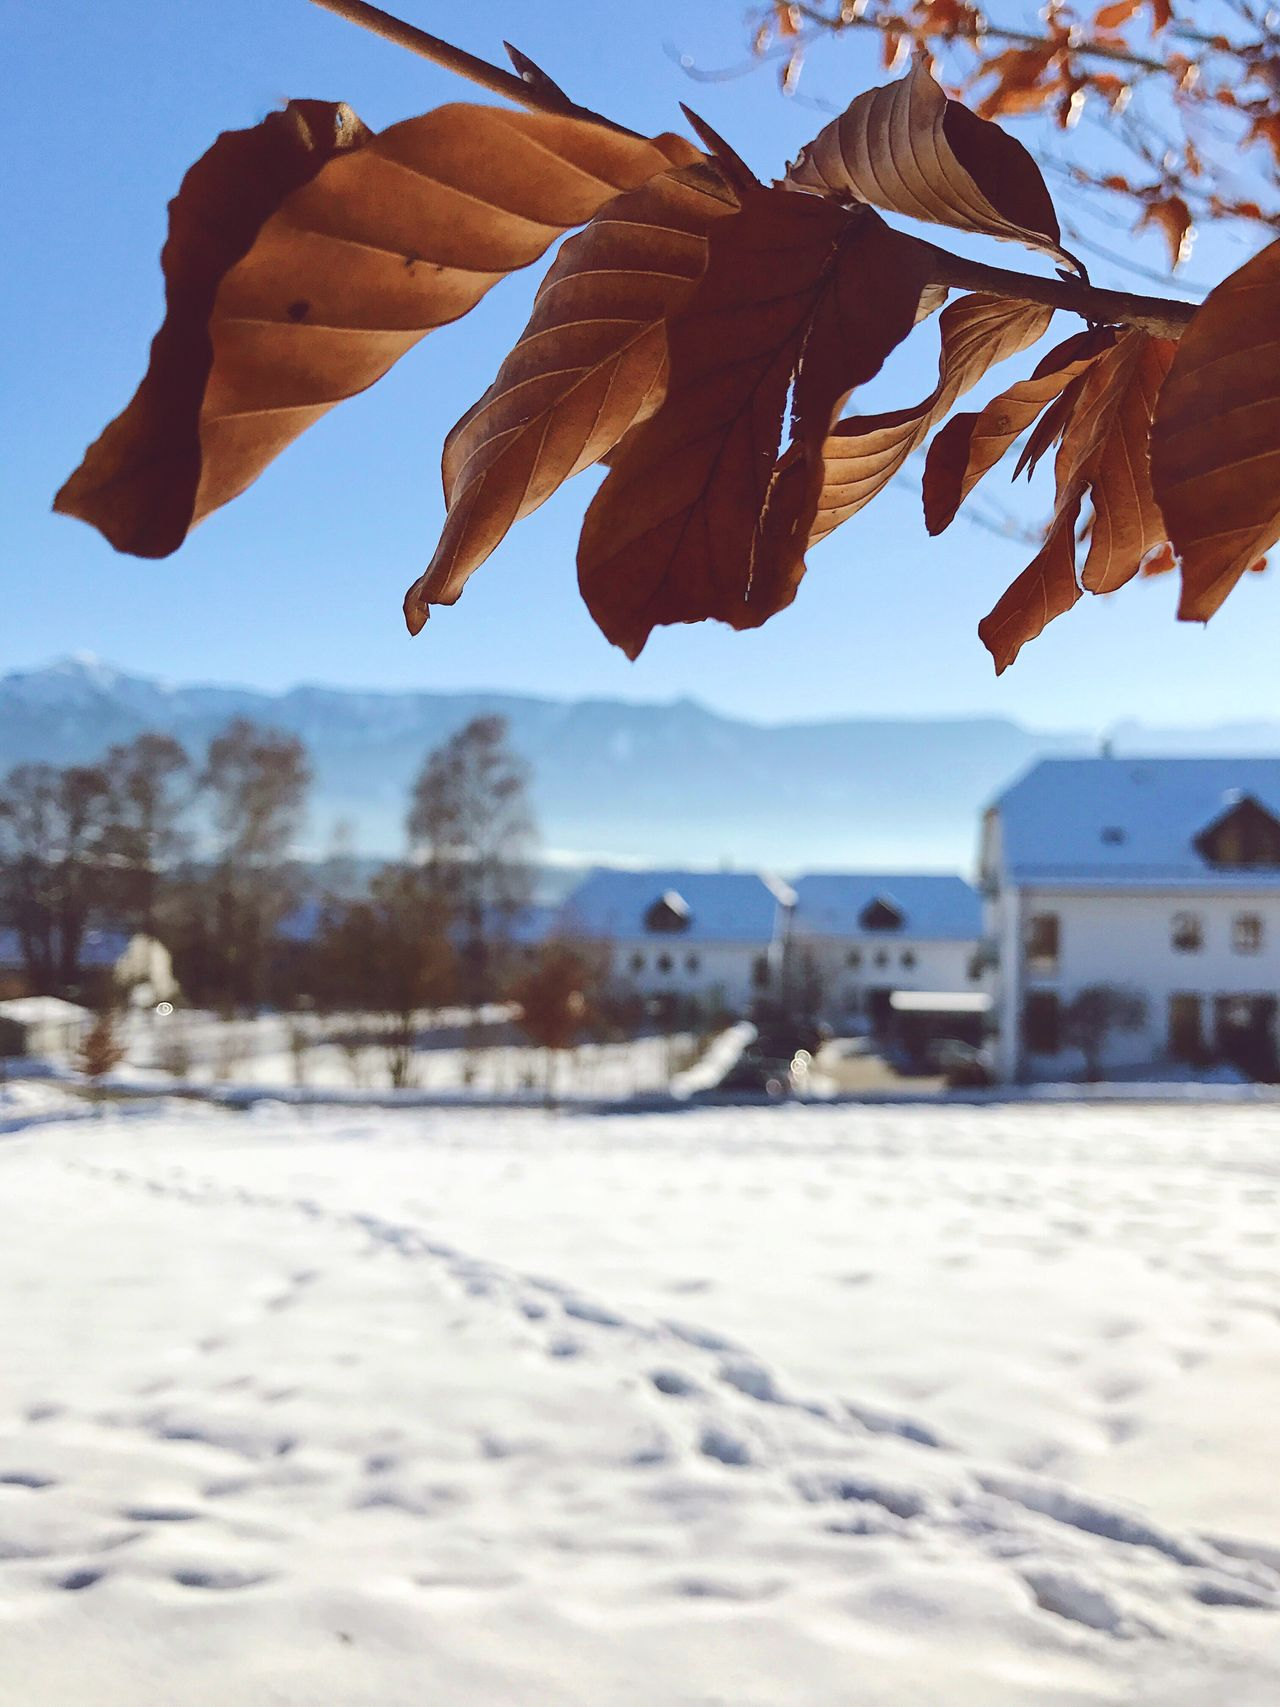 Weather IPhoneography Travel Germany Bavaria VSCO Snow Winter